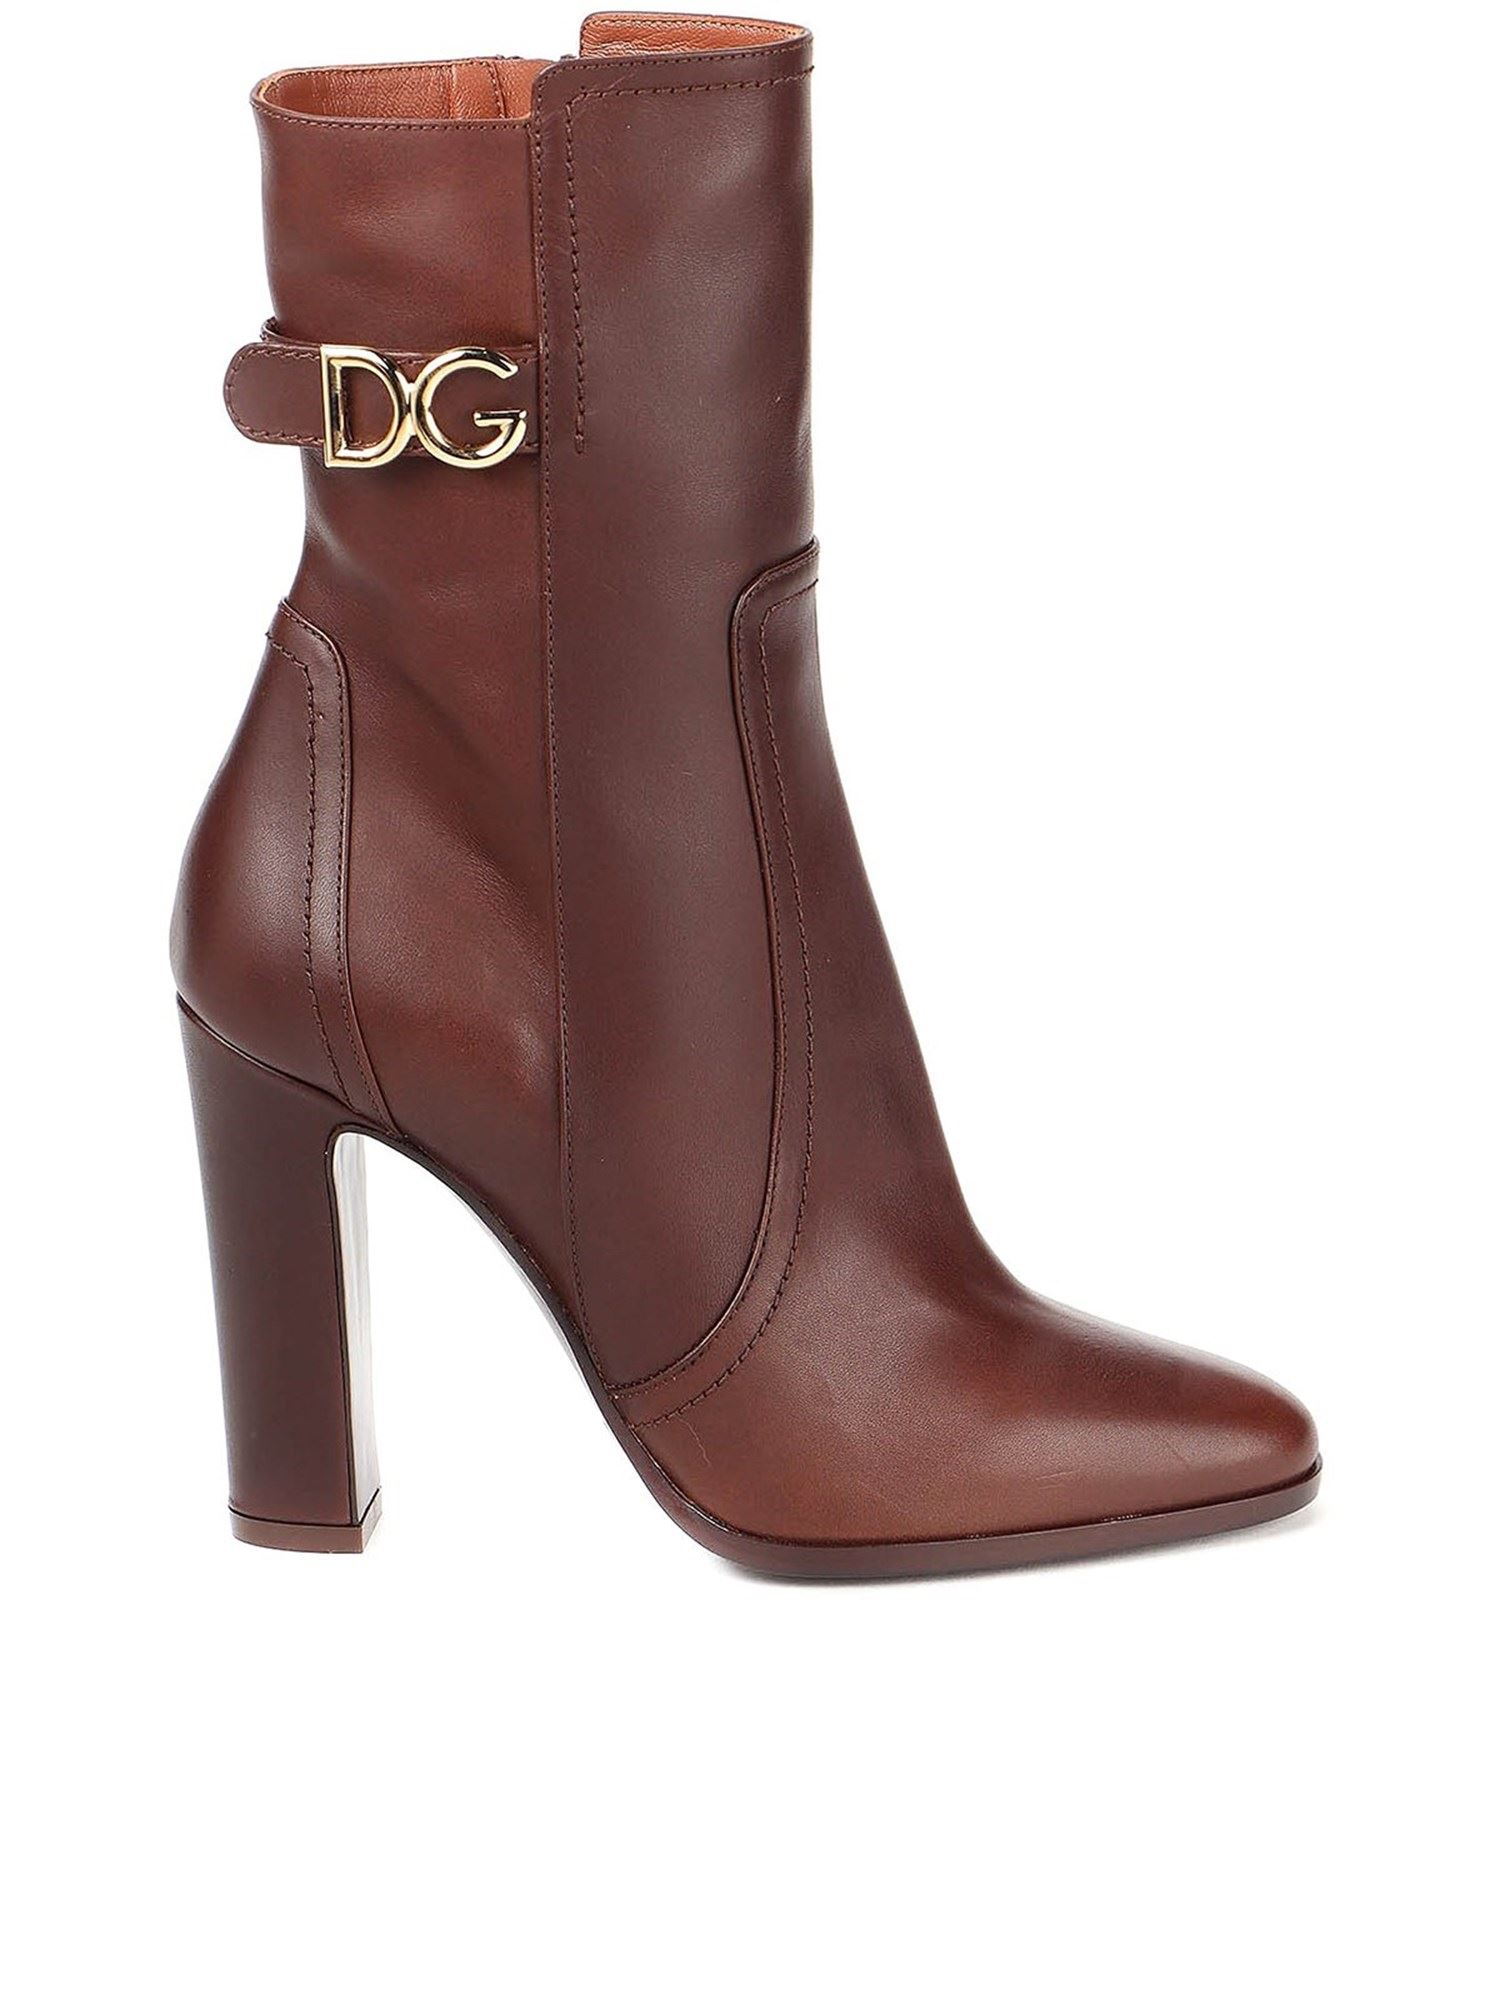 DOLCE & GABBANA DG LOGO ANKLE BOOTS IN BROWN